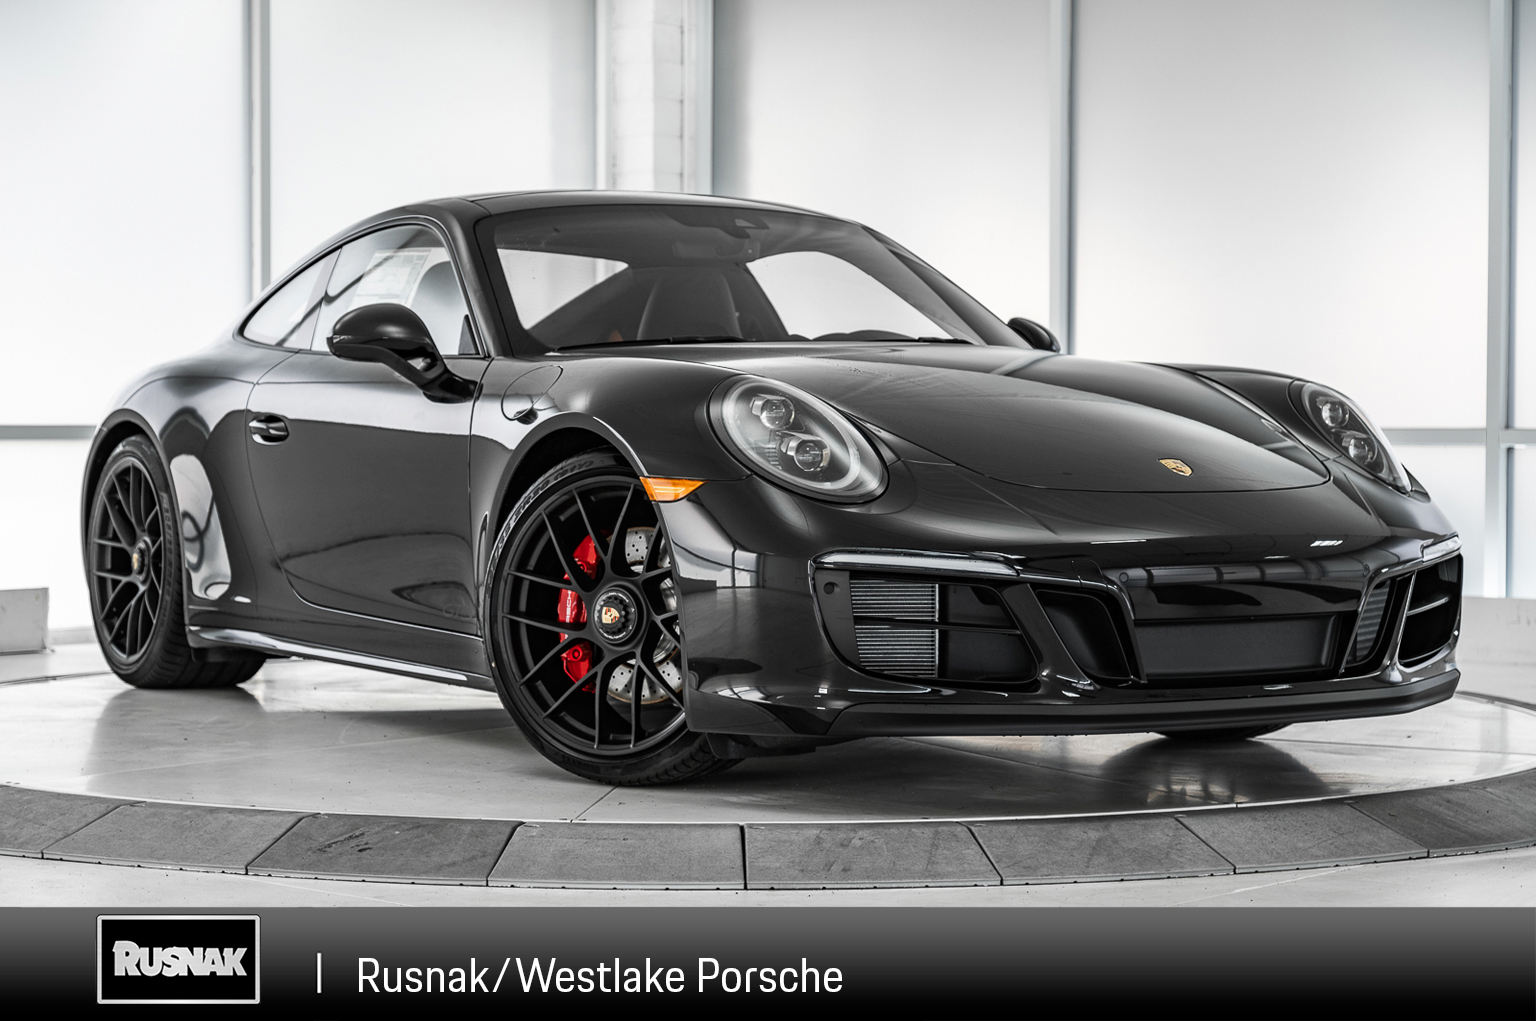 new 2019 porsche 911 carrera gts 2dr car in thousand oaks #23190002